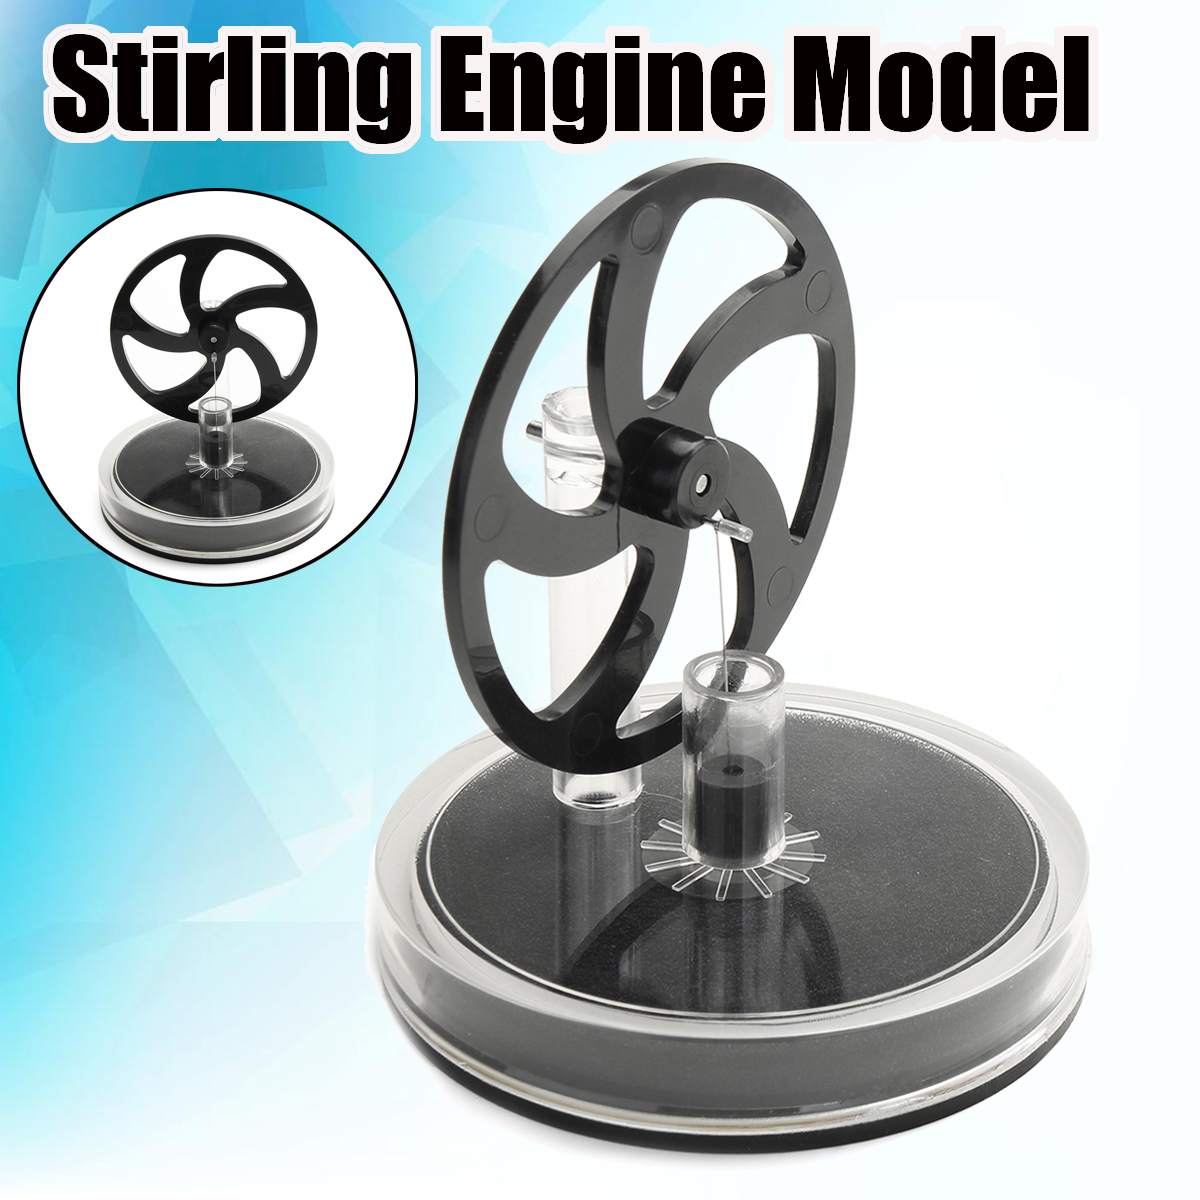 Discovery Toys Low Temperature Mini Air Stirling Engine Motor Model Heat Steam Education Toy Science Experiment Kit Toy Gift 探索科学百科 discovery education(中阶)2级a3·泰坦尼克与冰山